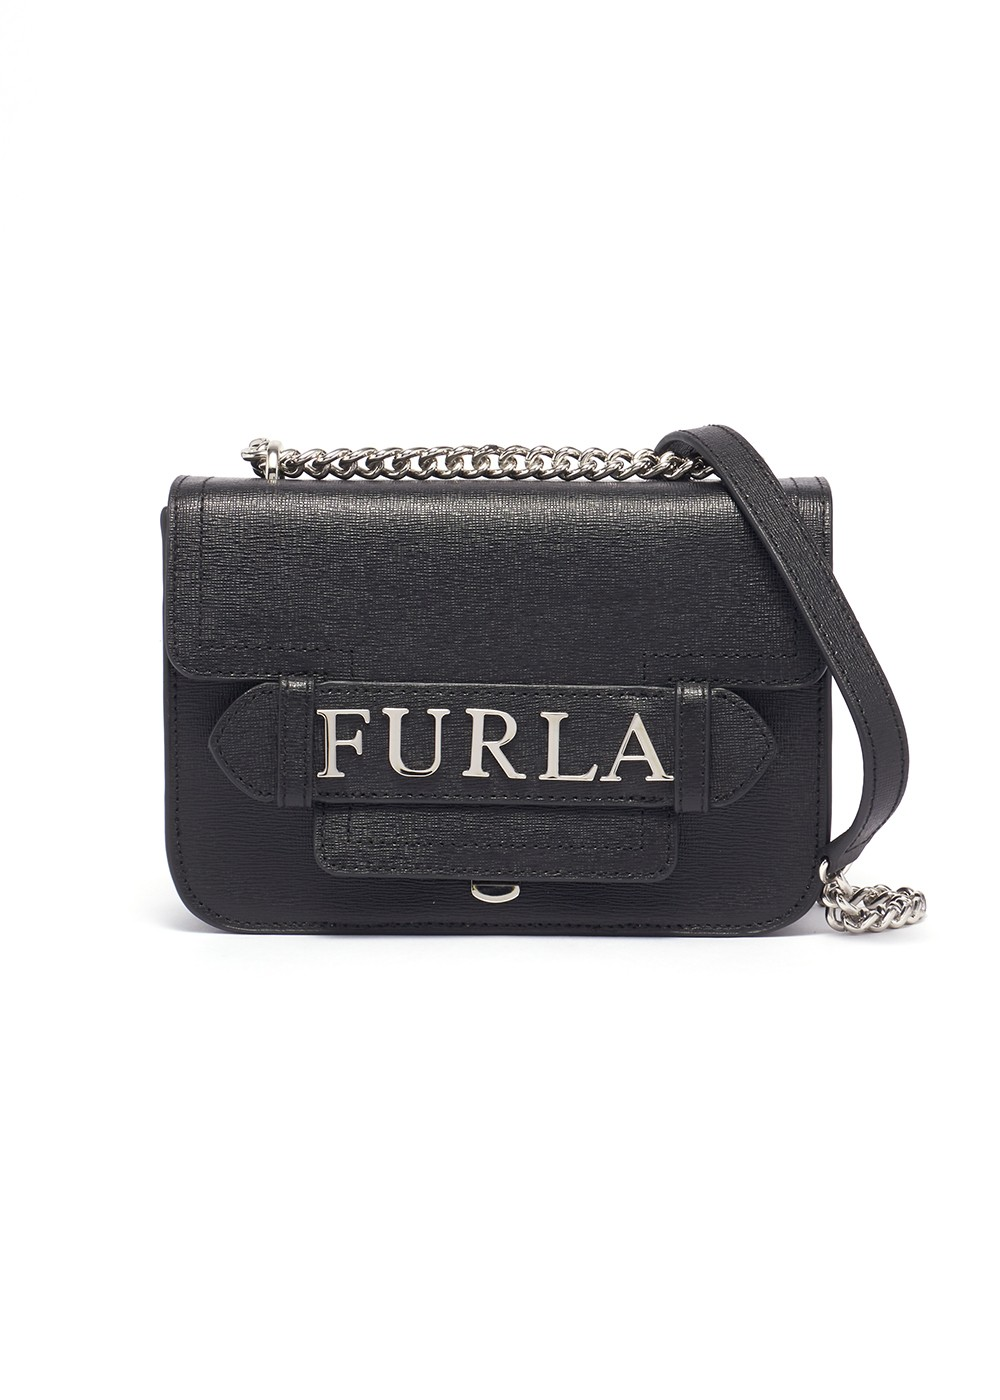 【最大57%OFF】【FURLA】CAROLショルダーバッグ|ONYX|ショルダーバッグ|2019 SPRING & SUMMER NEW ARRIVAL COLLECTION